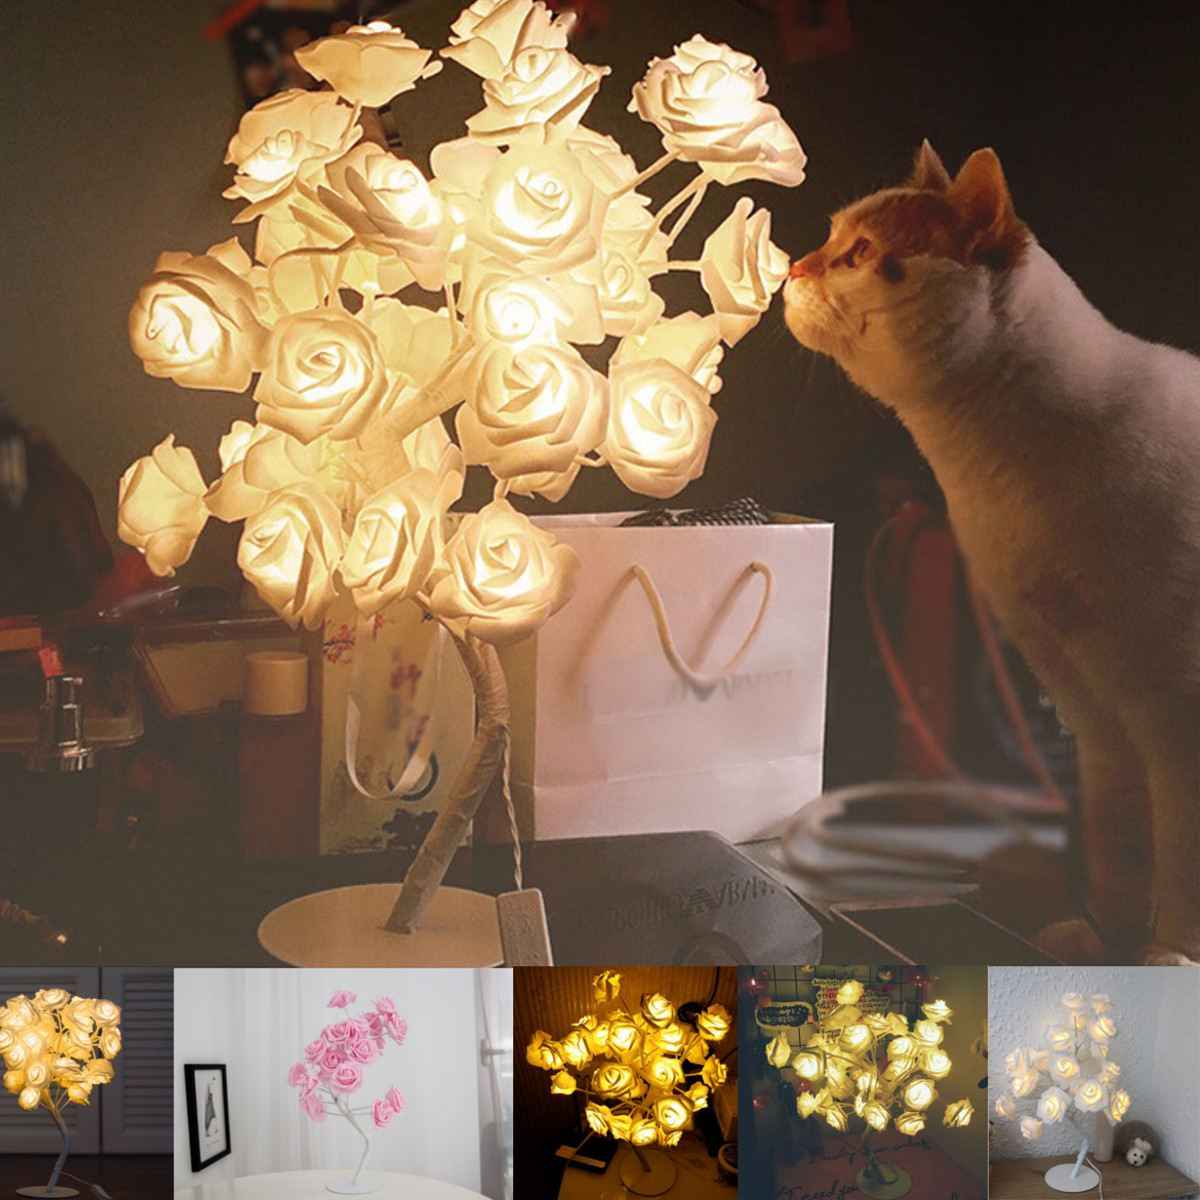 24 LED Rose Flowers Table Lamps Desk Night Light Indoor Lighting Lamp Home Bedroom Decoration Wedding Party Ornaments Pink/White